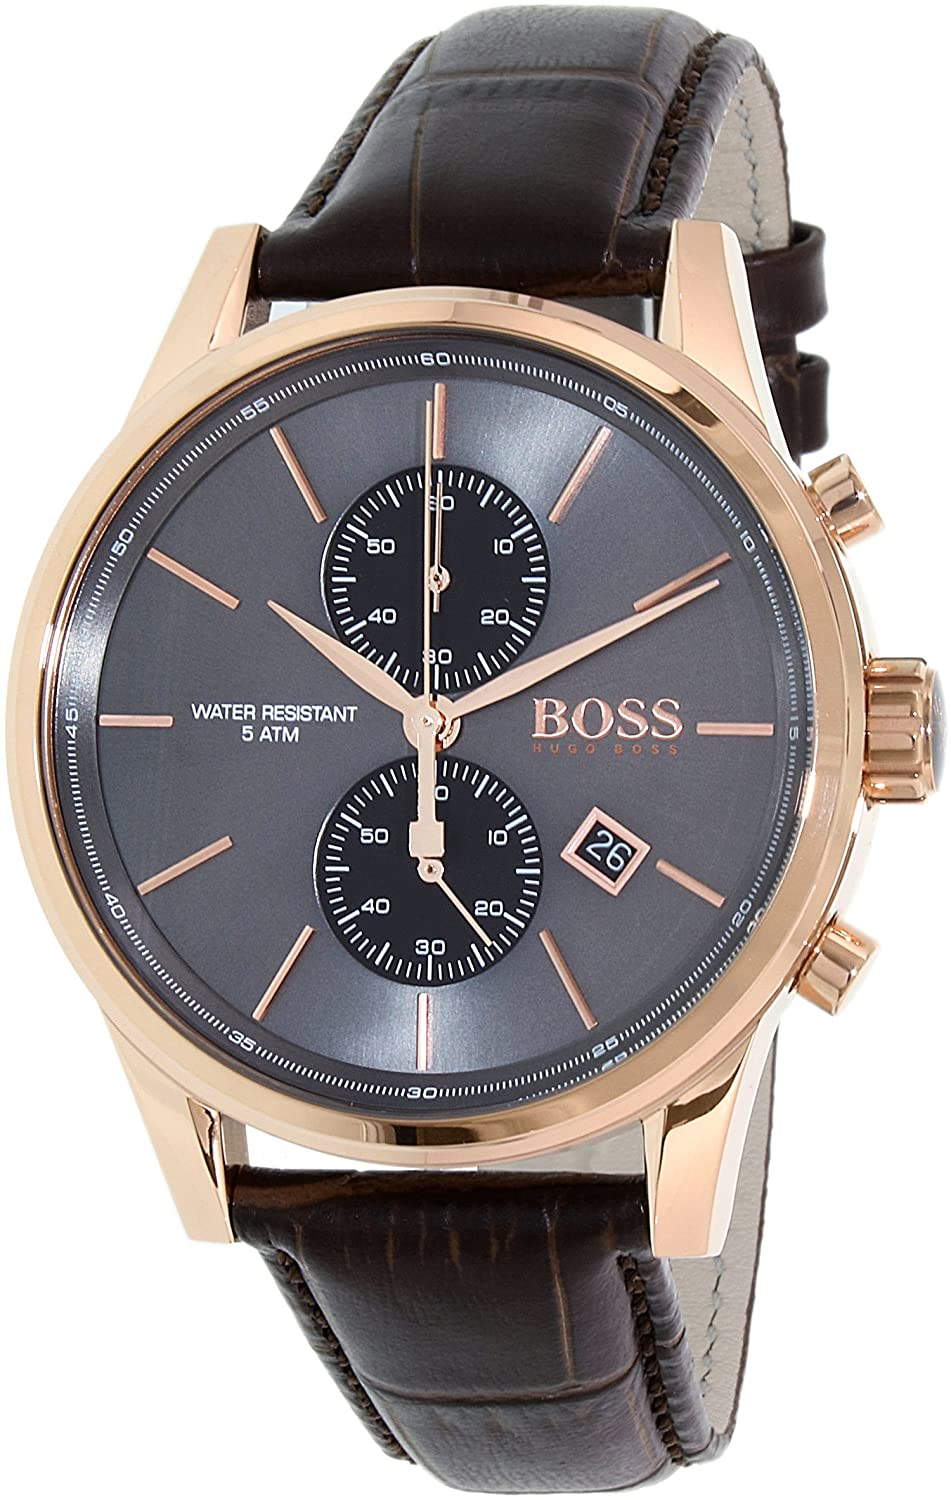 hugo boss 1513281 42mm stainless steel case brown calfskin mineral hugo boss 1513281 42mm stainless steel case brown calfskin mineral men s watch hugo boss amazon co uk watches